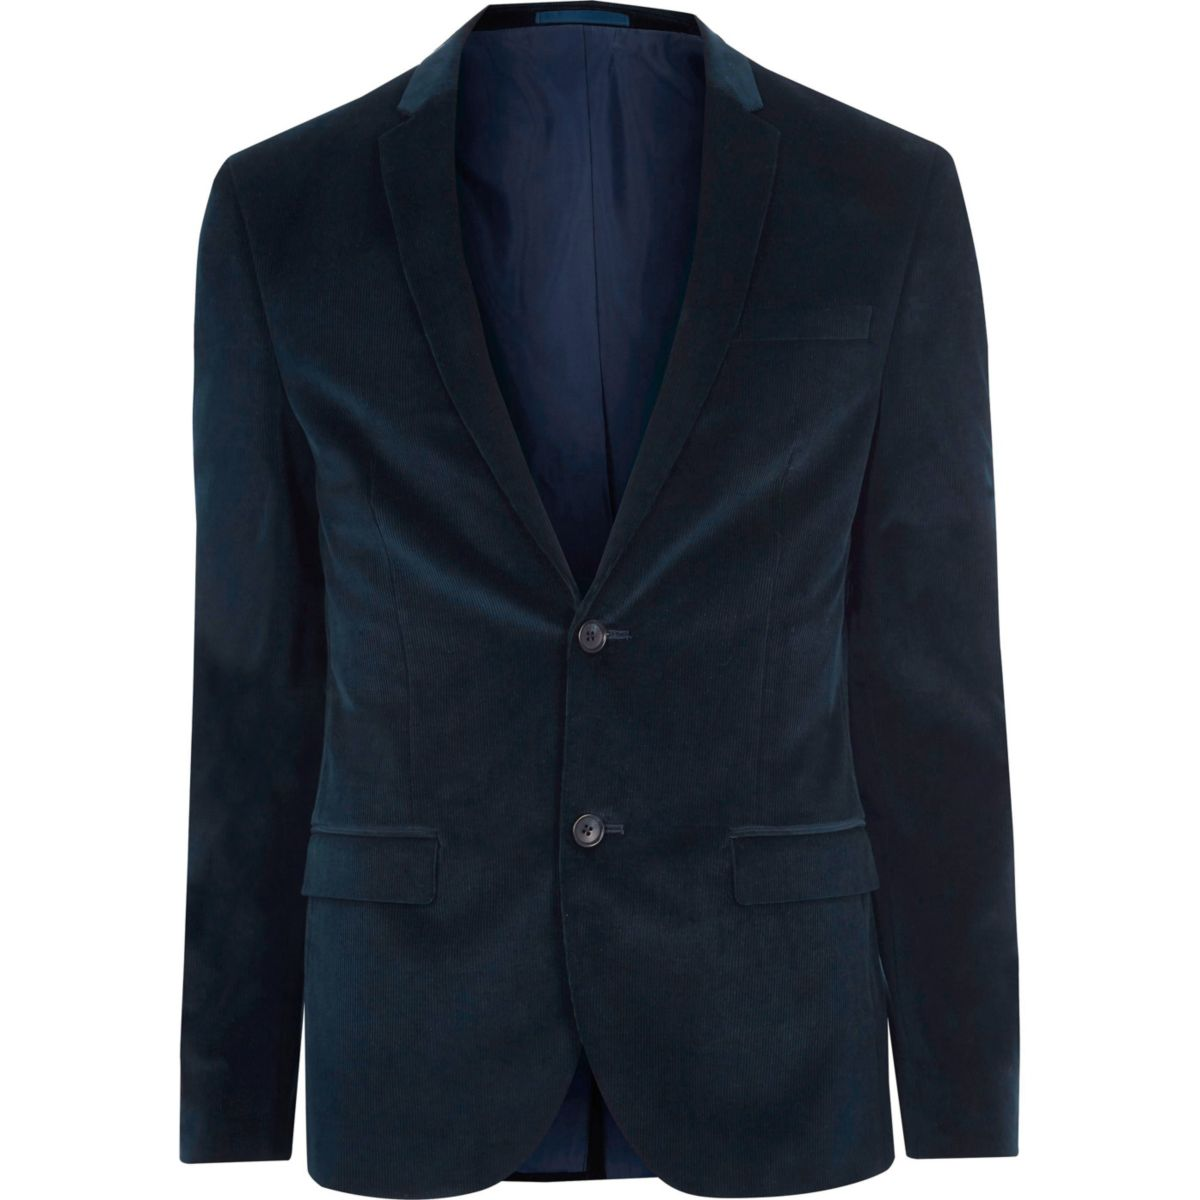 Teal blue corduroy skinny fit suit jacket